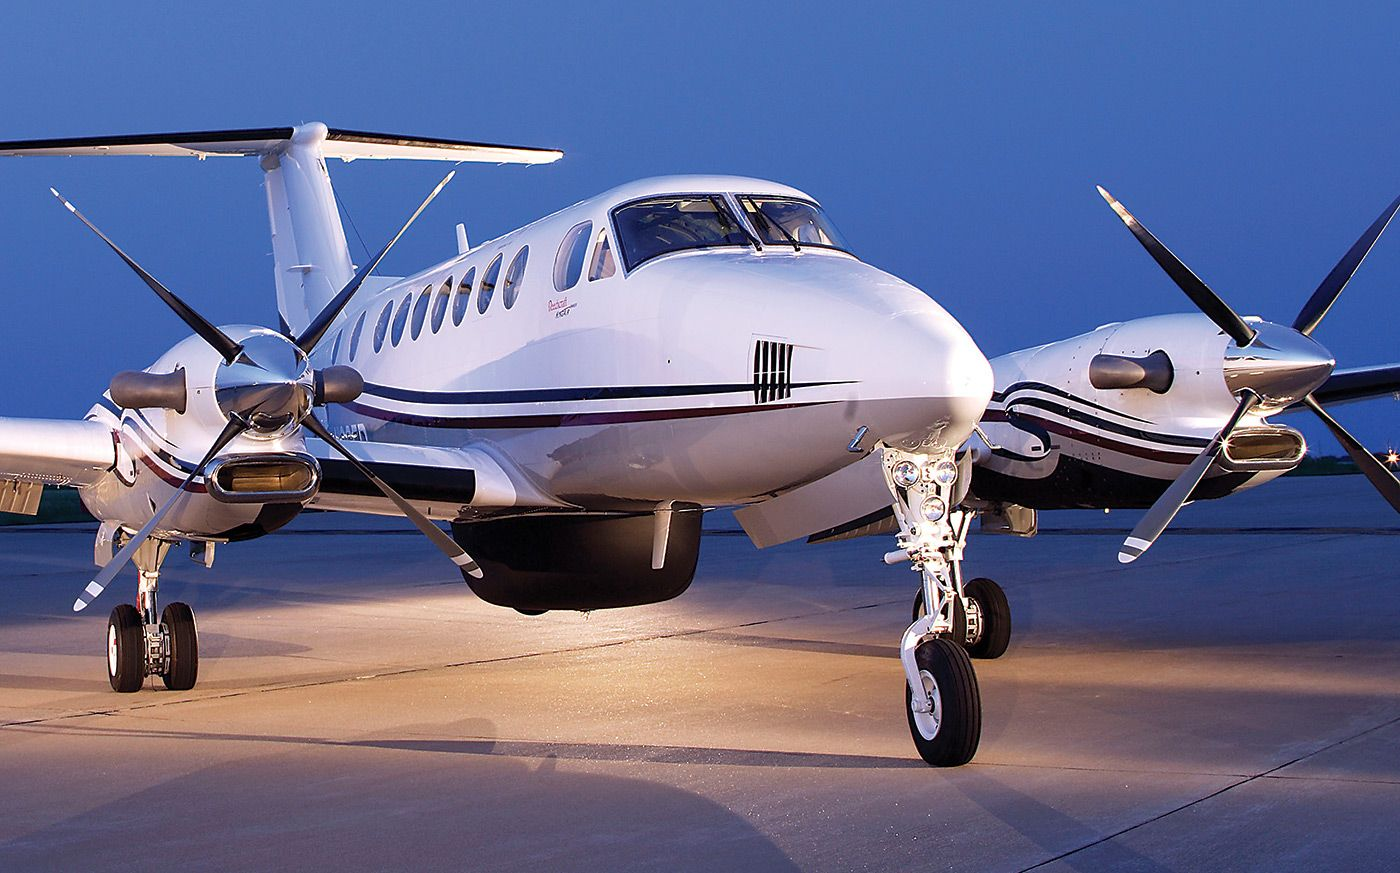 King Air 350ER identified as solution for Special Forces